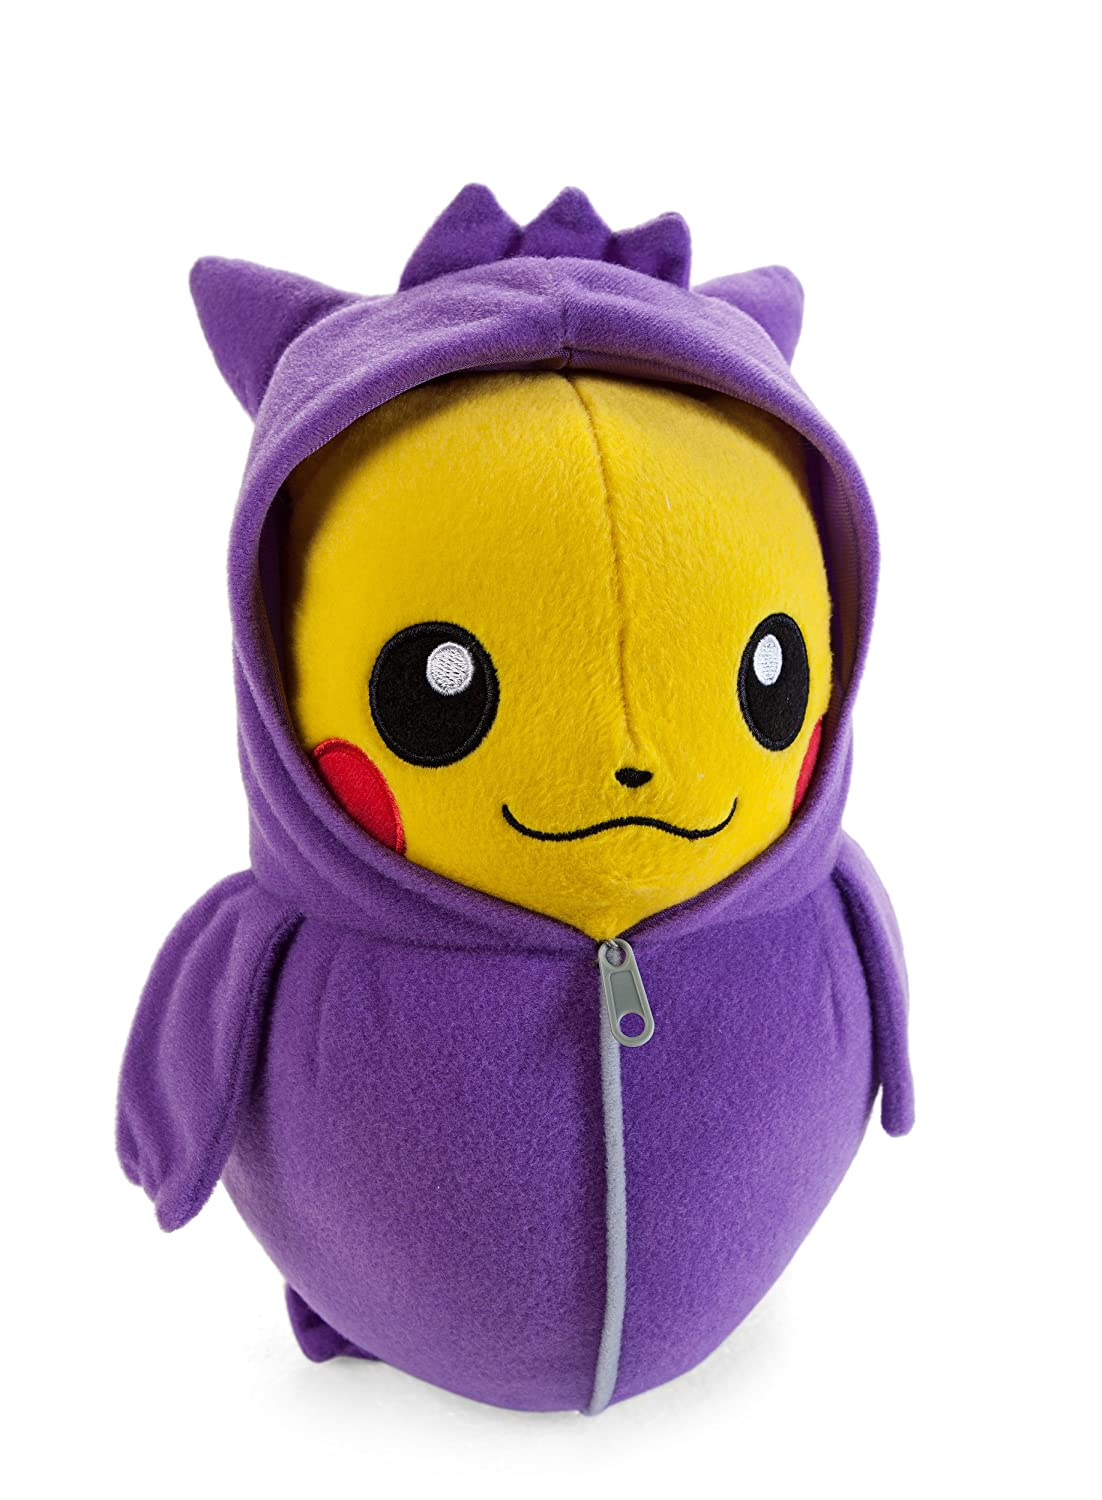 Pokemon Pikachu in Gengar Sleeping Bag 10 Inch Nebukuro Collection Juguete De Peluche